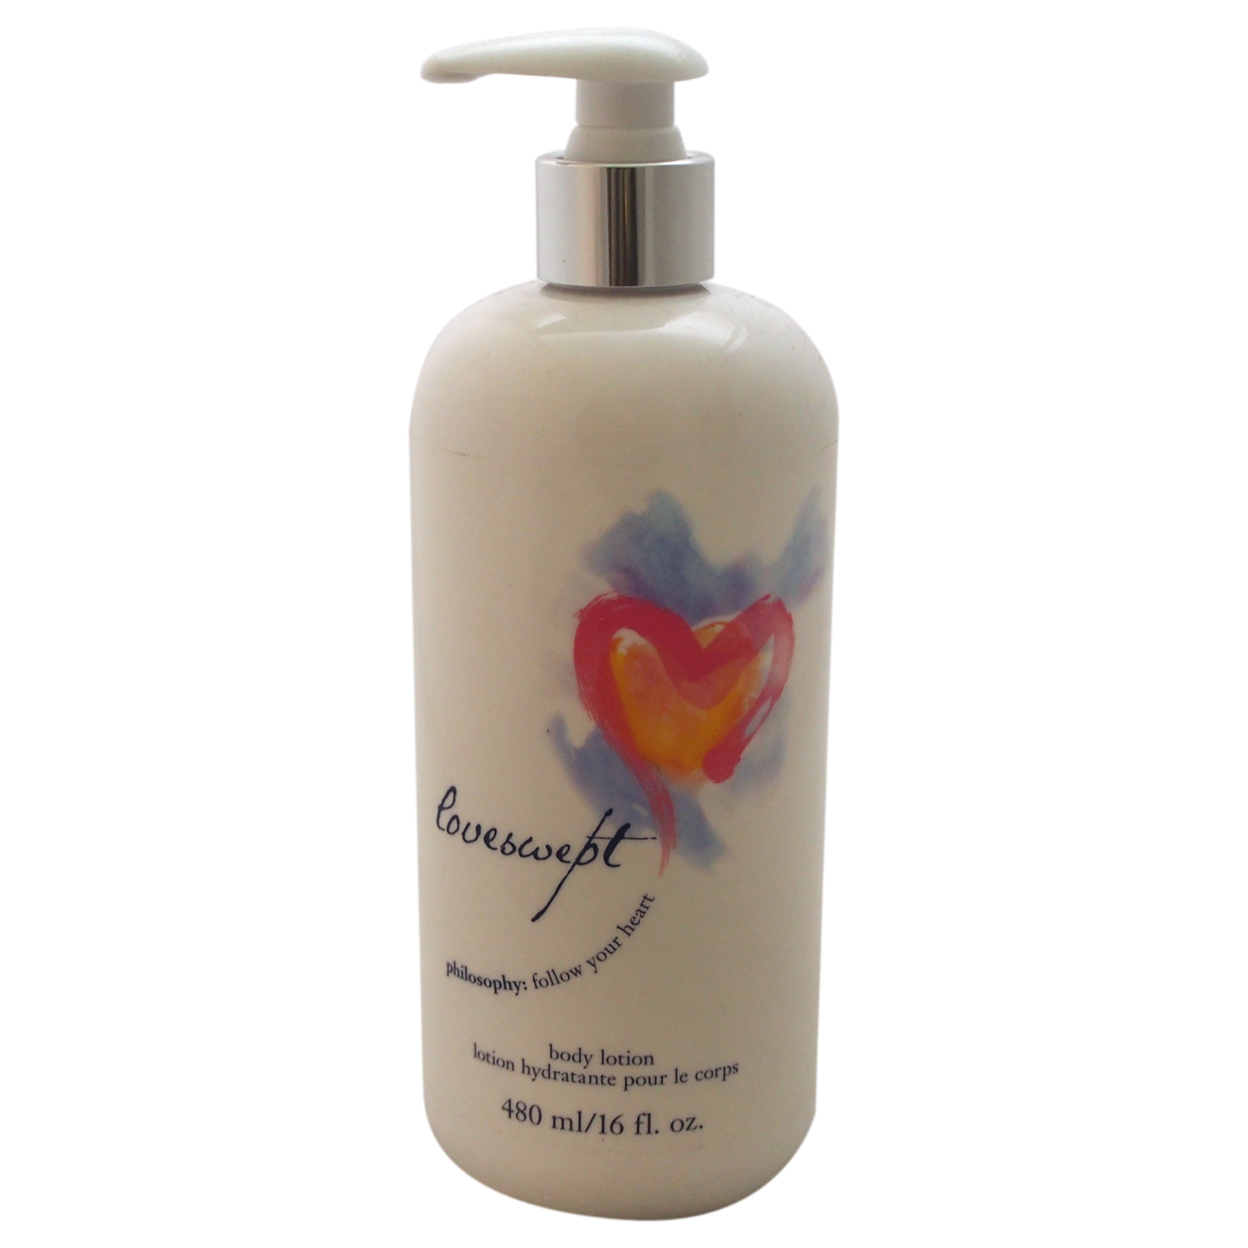 Loveswept By Philosophy For Women 16 Oz Body Lotion